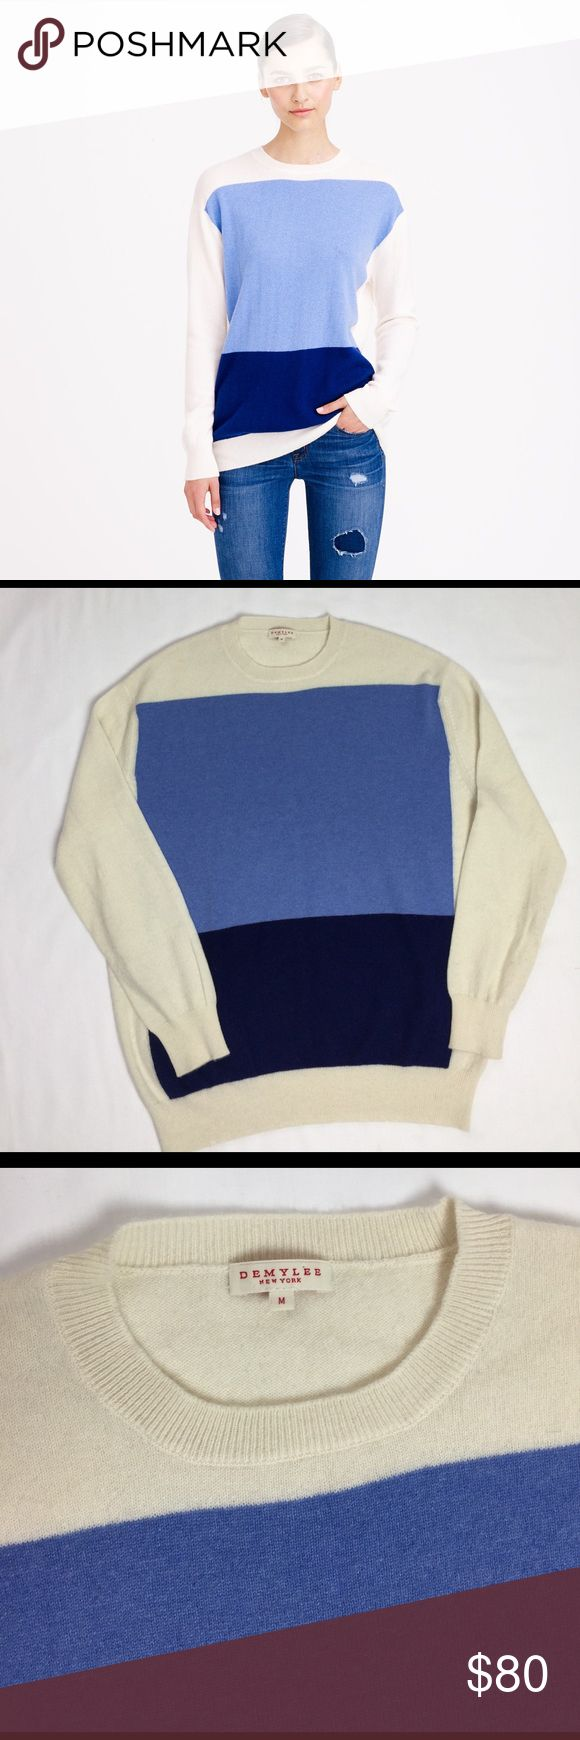 """J.Crew Demylee Sage Cashmere Sweater Geometric Lg Excellent used condition,No flaws. ALL MEASUREMENTS ARE TAKEN WITH GARMENT LYING FLAT: SLEEVES: 22"""" BUST: 22"""" WAIST: 21"""" LENGHT: 26"""" J.Crew Sweaters Crew & Scoop Necks"""